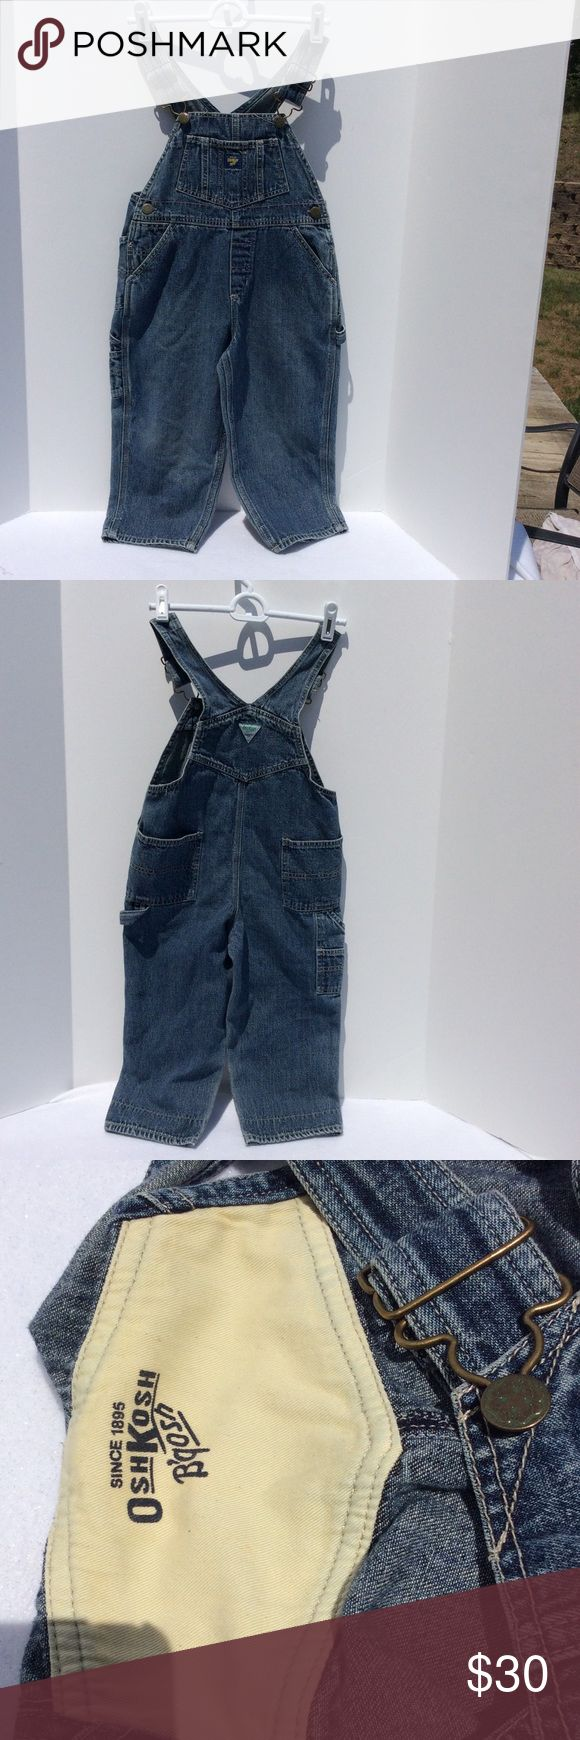 Osh Kosh b gosh kids jean overalls sz 4T Osh Kosh B Gosh kids overalls sz 4T. Excellent condition. Smoke free home. So cute. Jeans denim Osh Kosh Bottoms Overalls